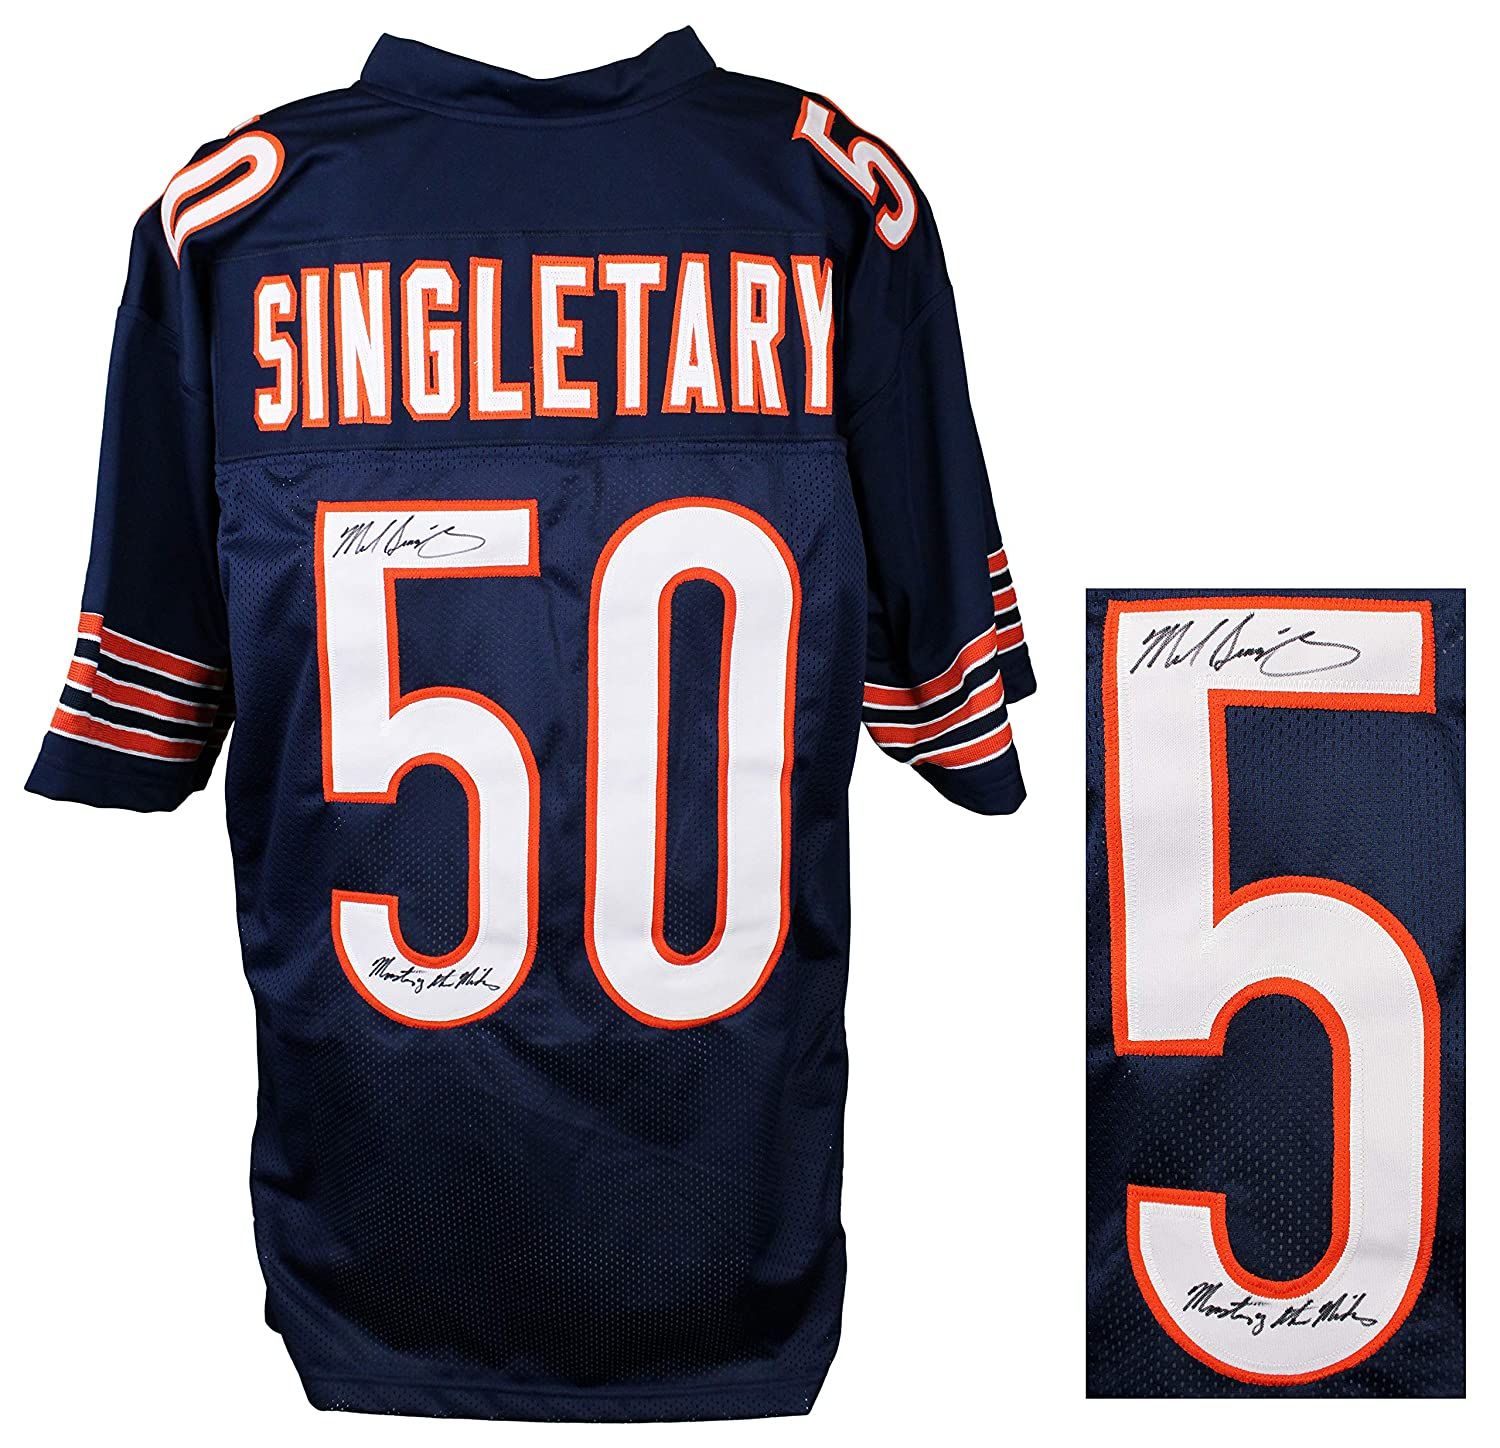 0038a55fc74 Mike Singletary Signed Navy Custom Throwback Jersey w/Monsters of the  Midway at Amazon's Sports Collectibles Store